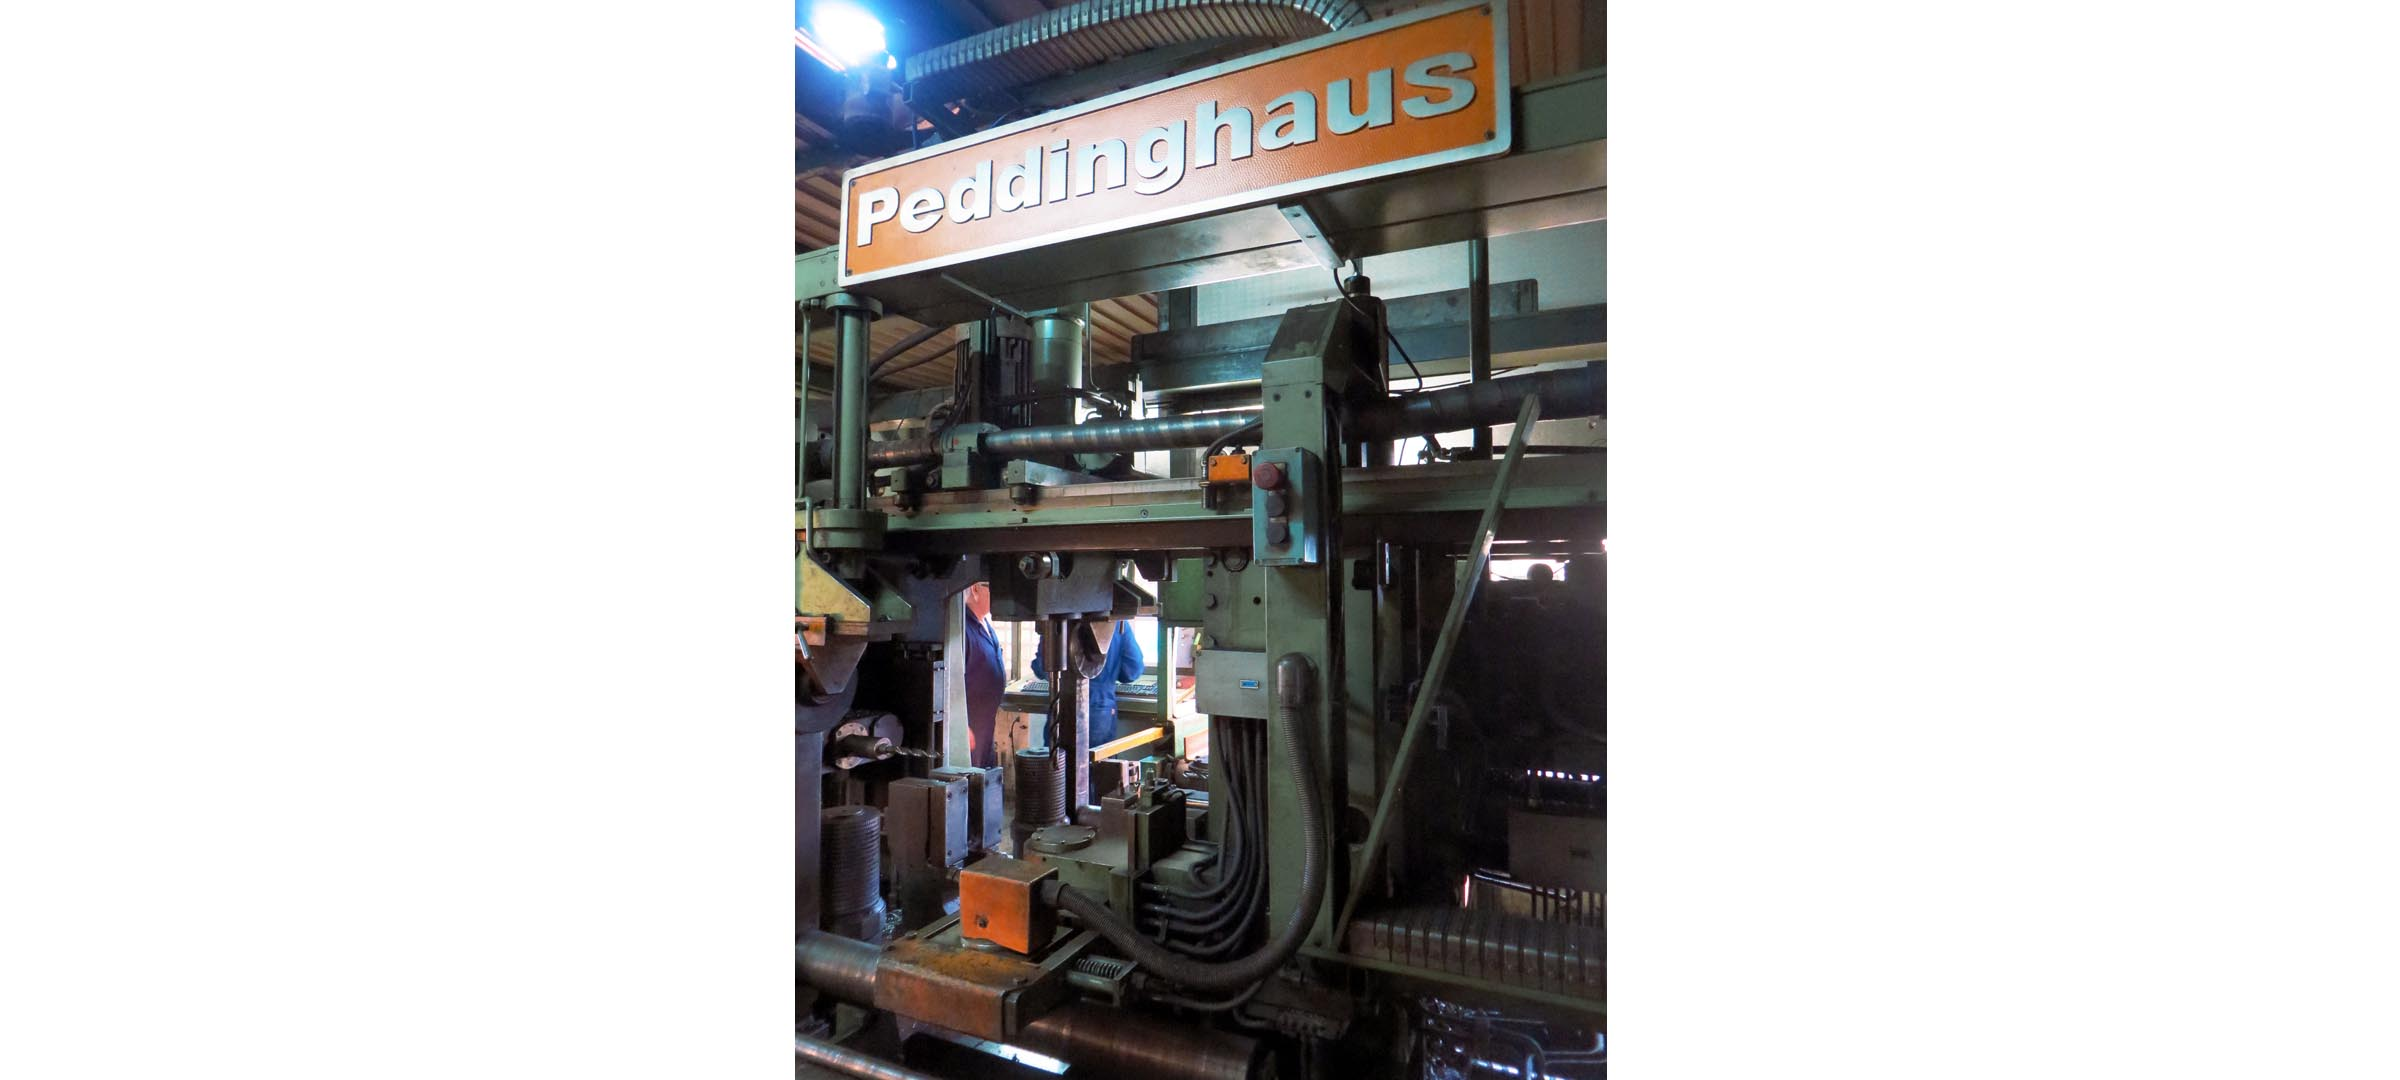 CNC 3-axis drilling